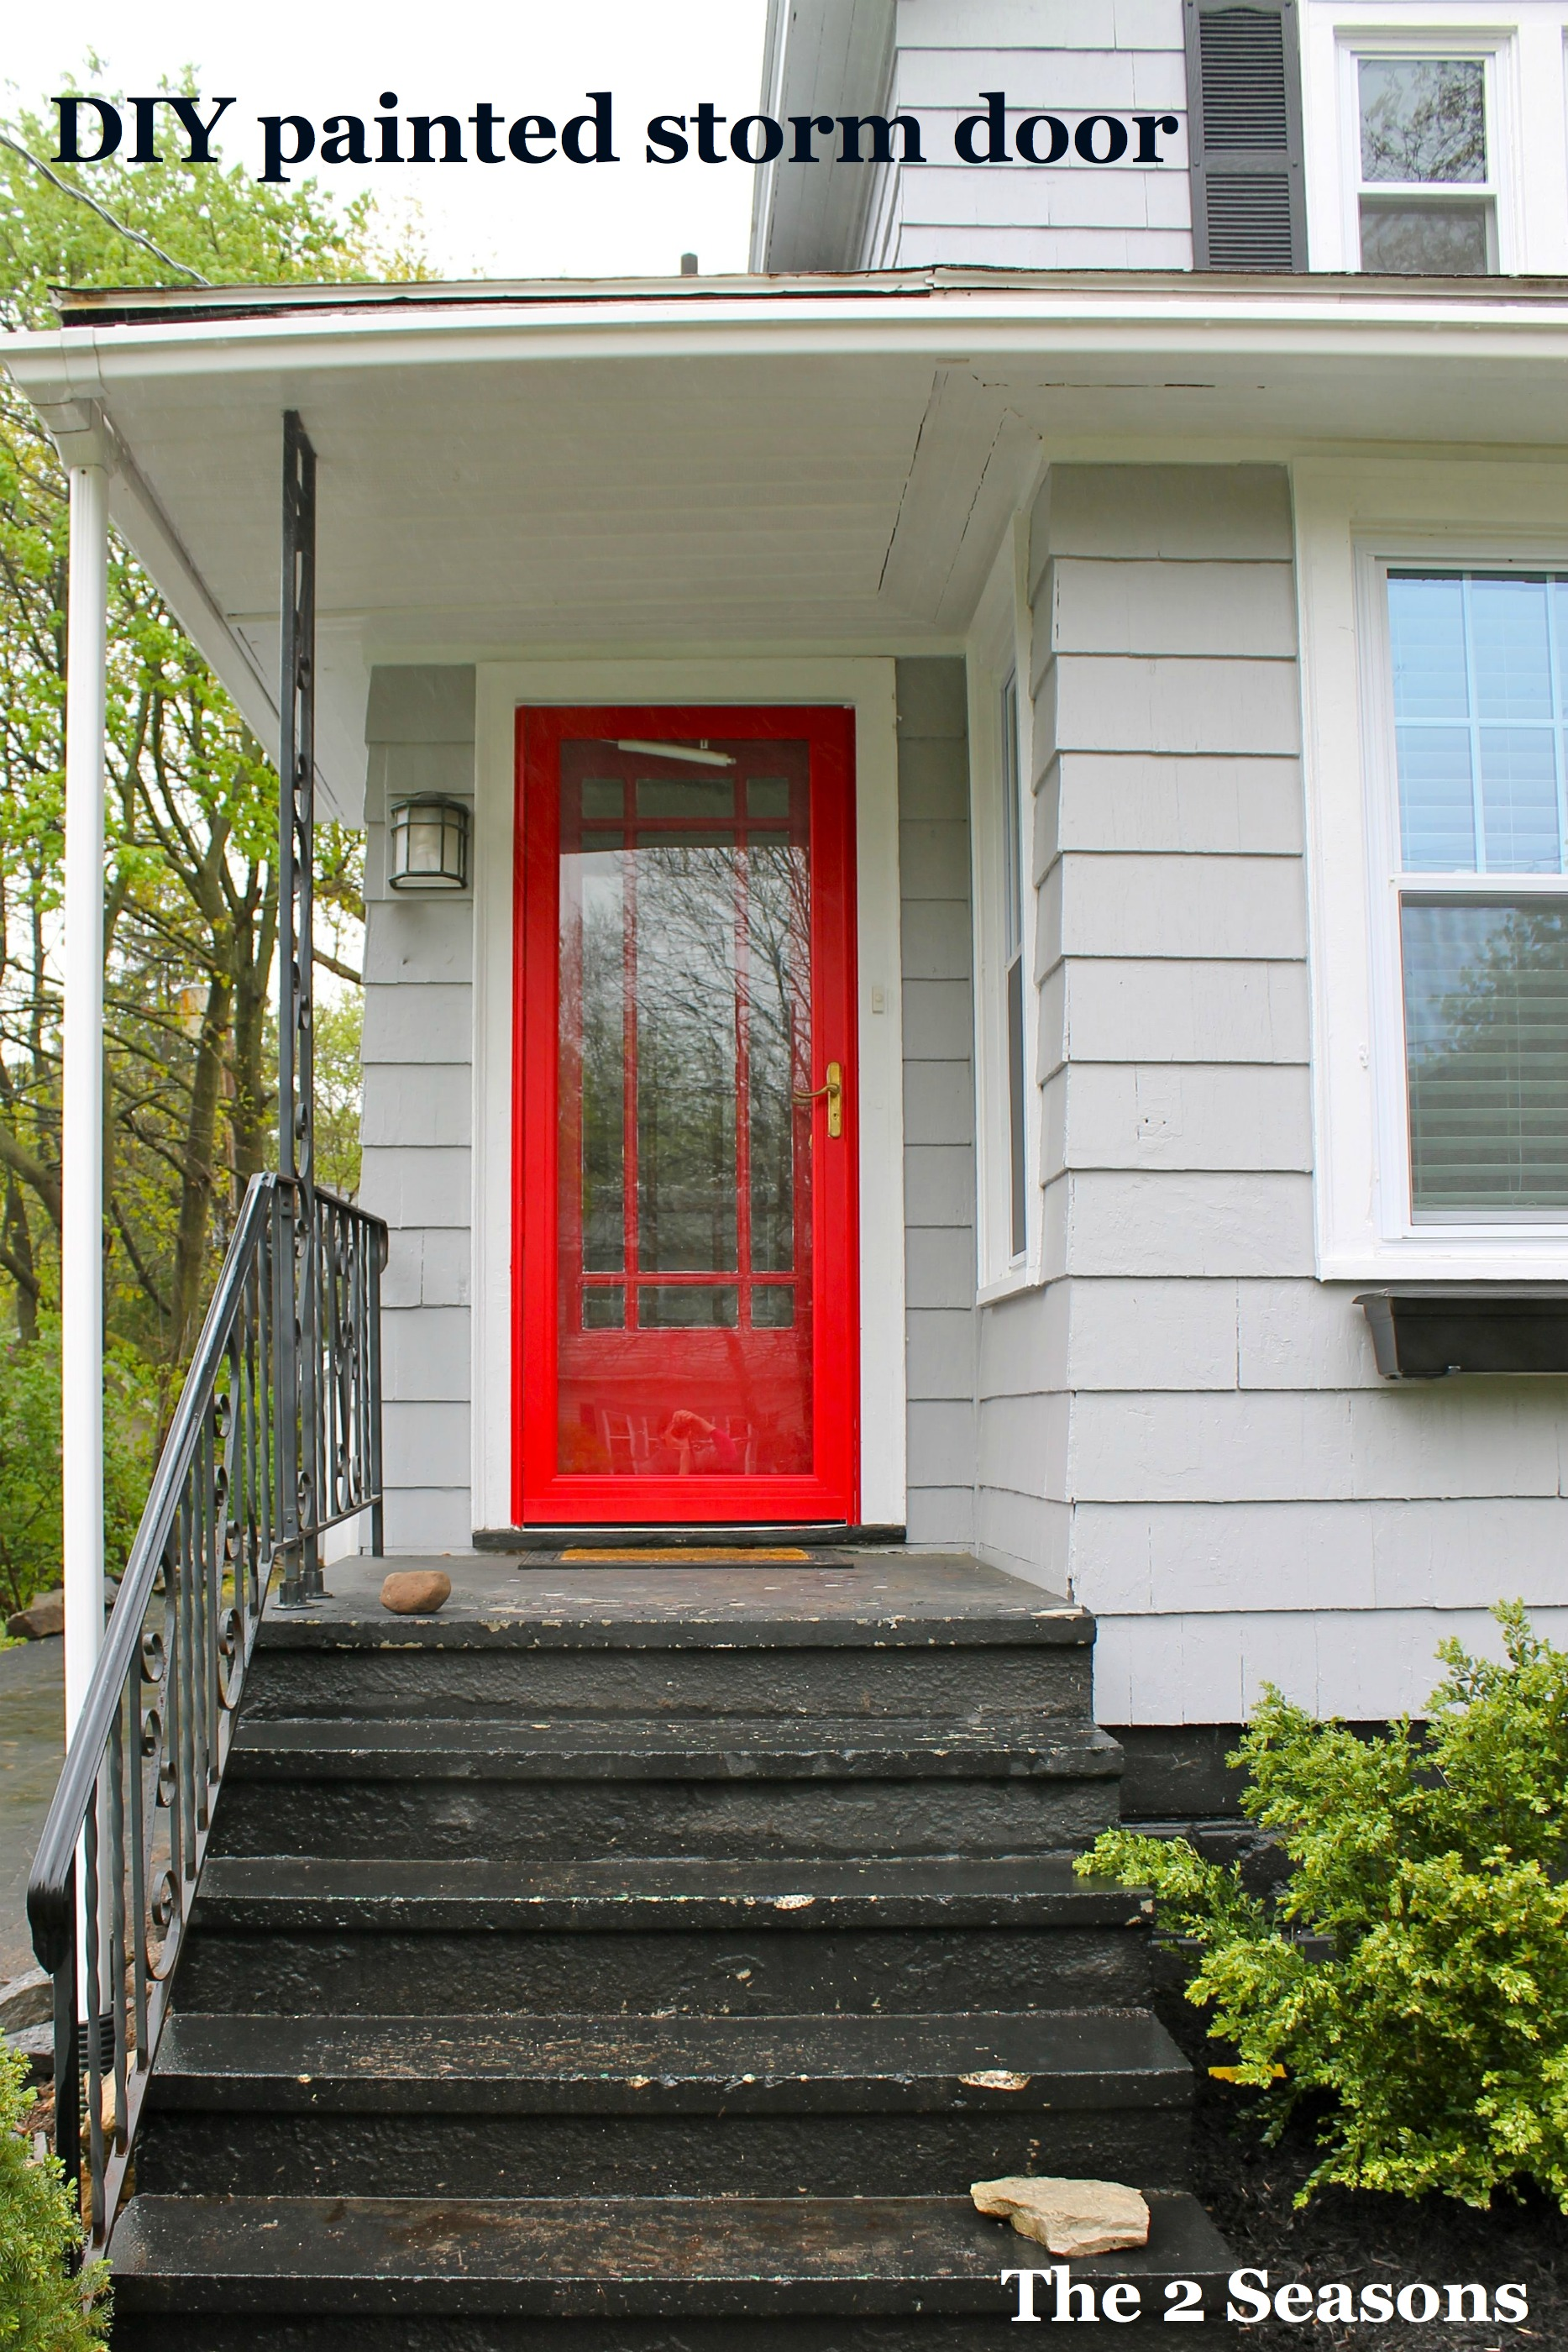 2800 #B2191A Painted Storm Door The 2 Seasons picture/photo Best Paint For Exterior Doors 39091867